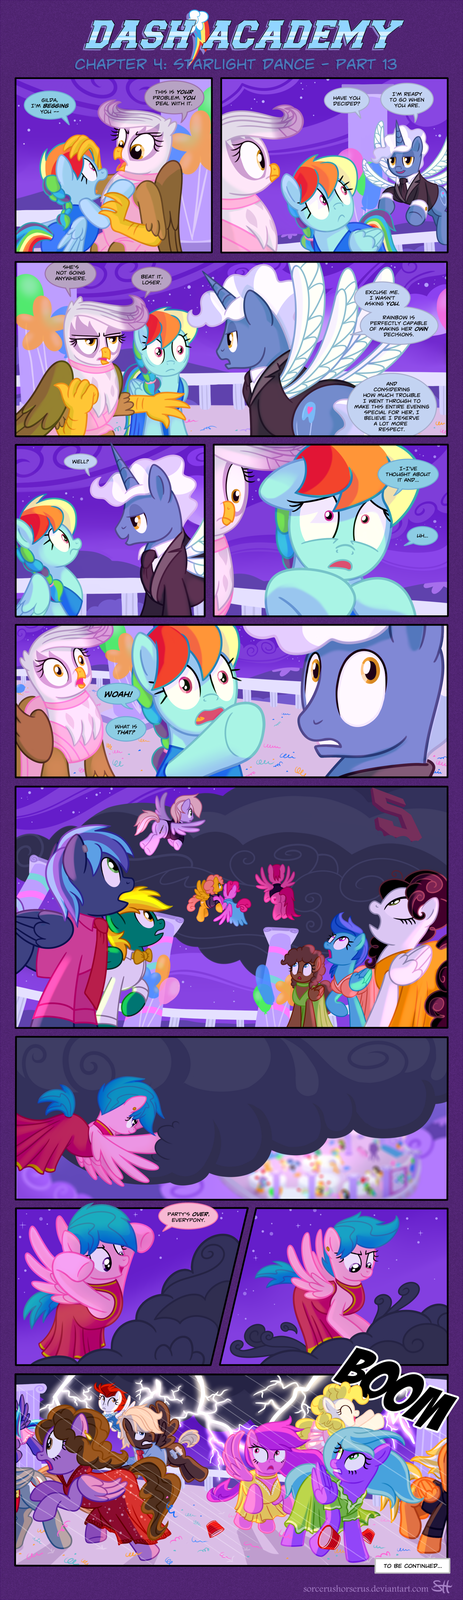 Dash Academy 4- Starlight Dance 13